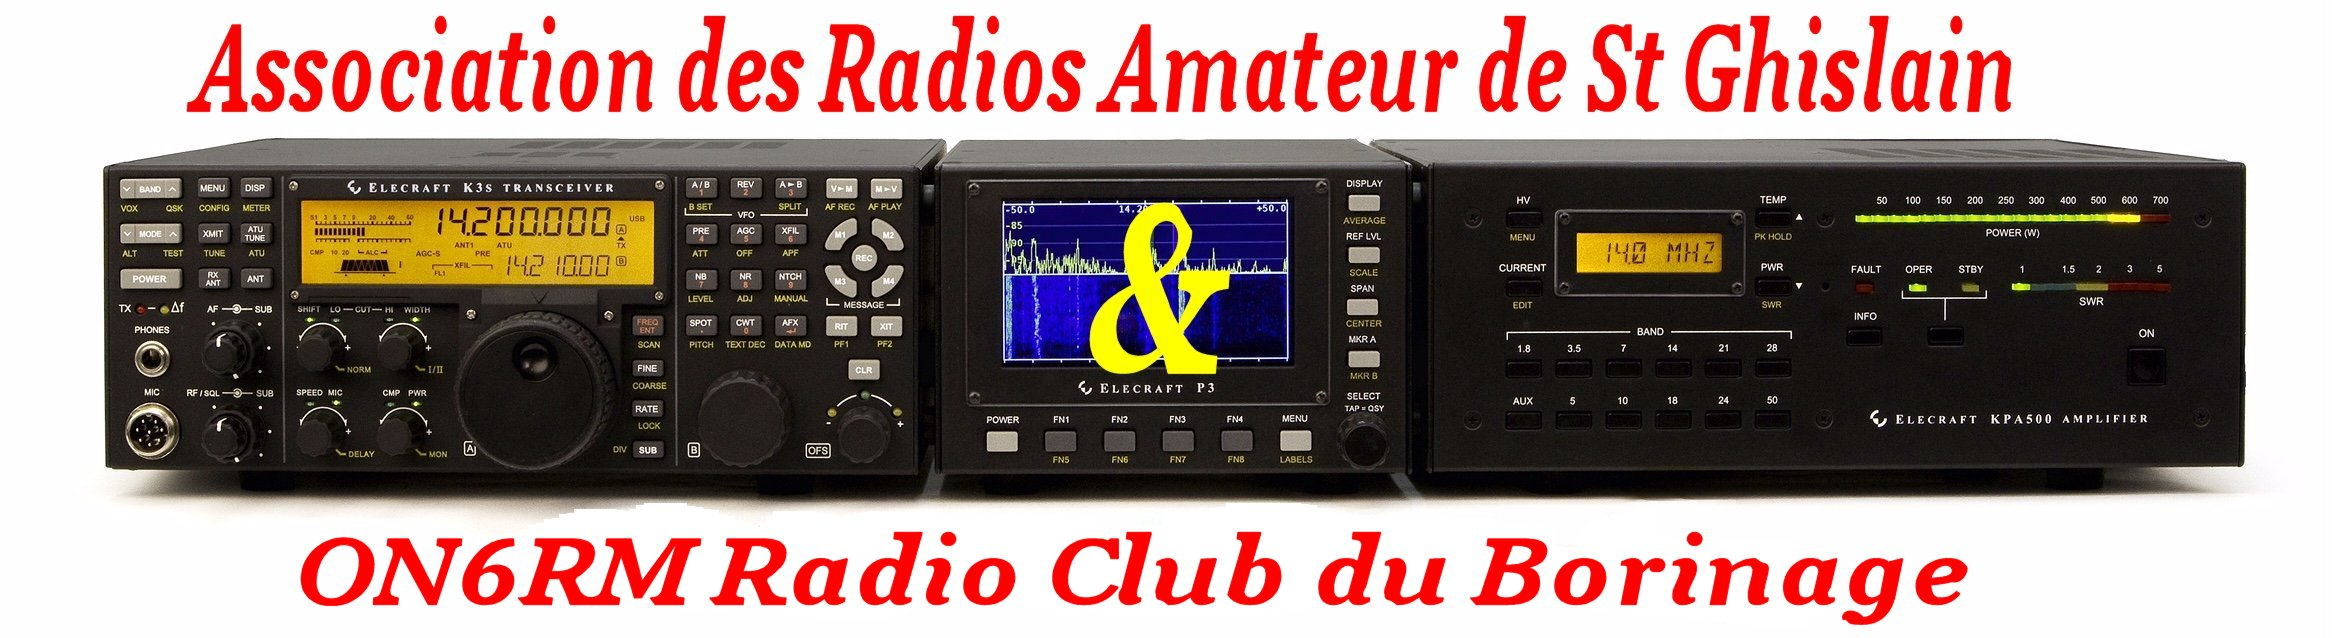 Radio club du Borinage